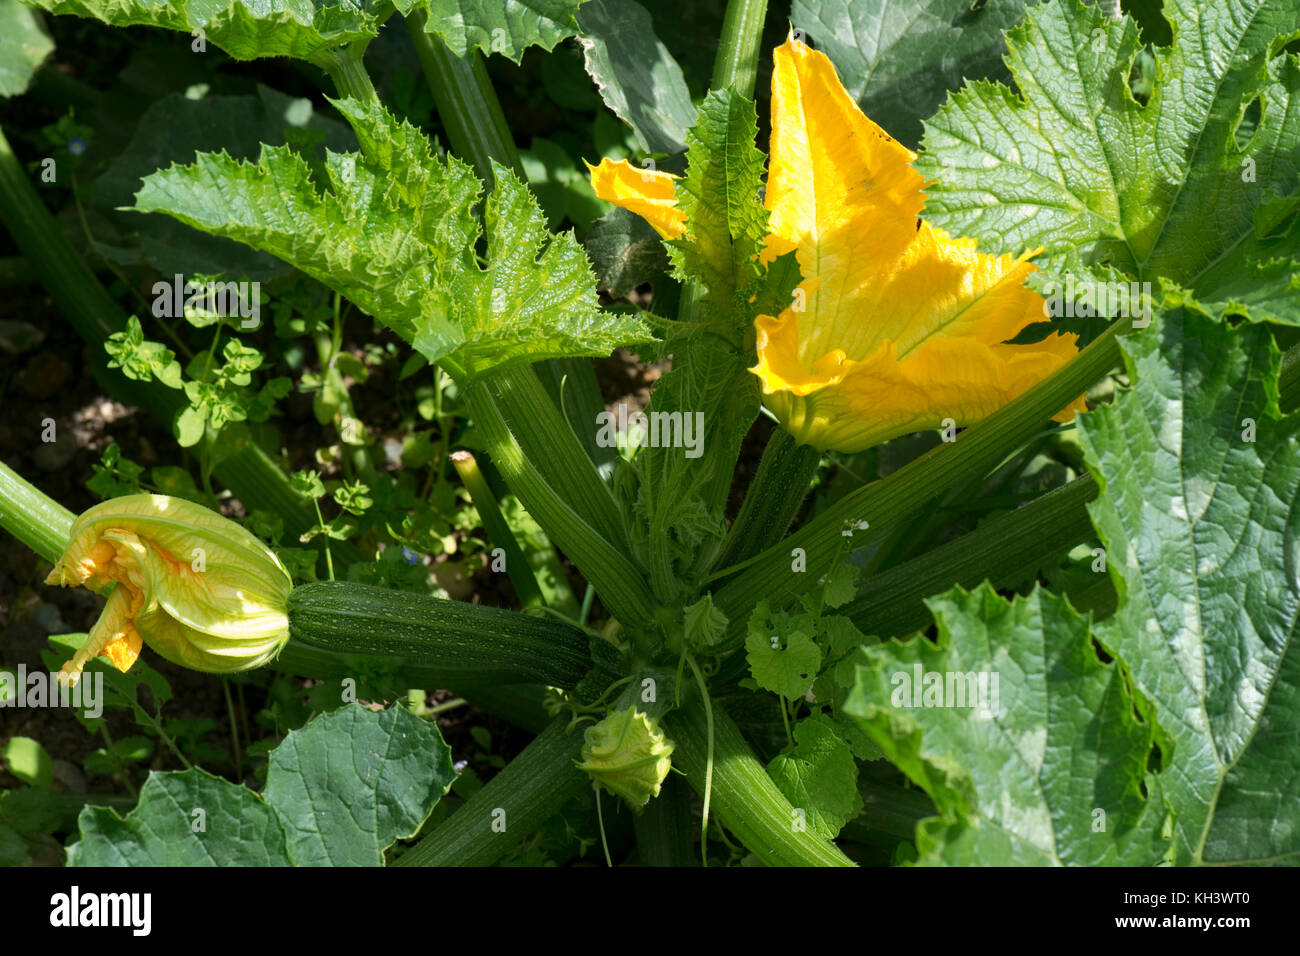 Yellow male and female flowers on a zucchini or courgette plant with young fruit developing under bold cucurbit - Stock Image